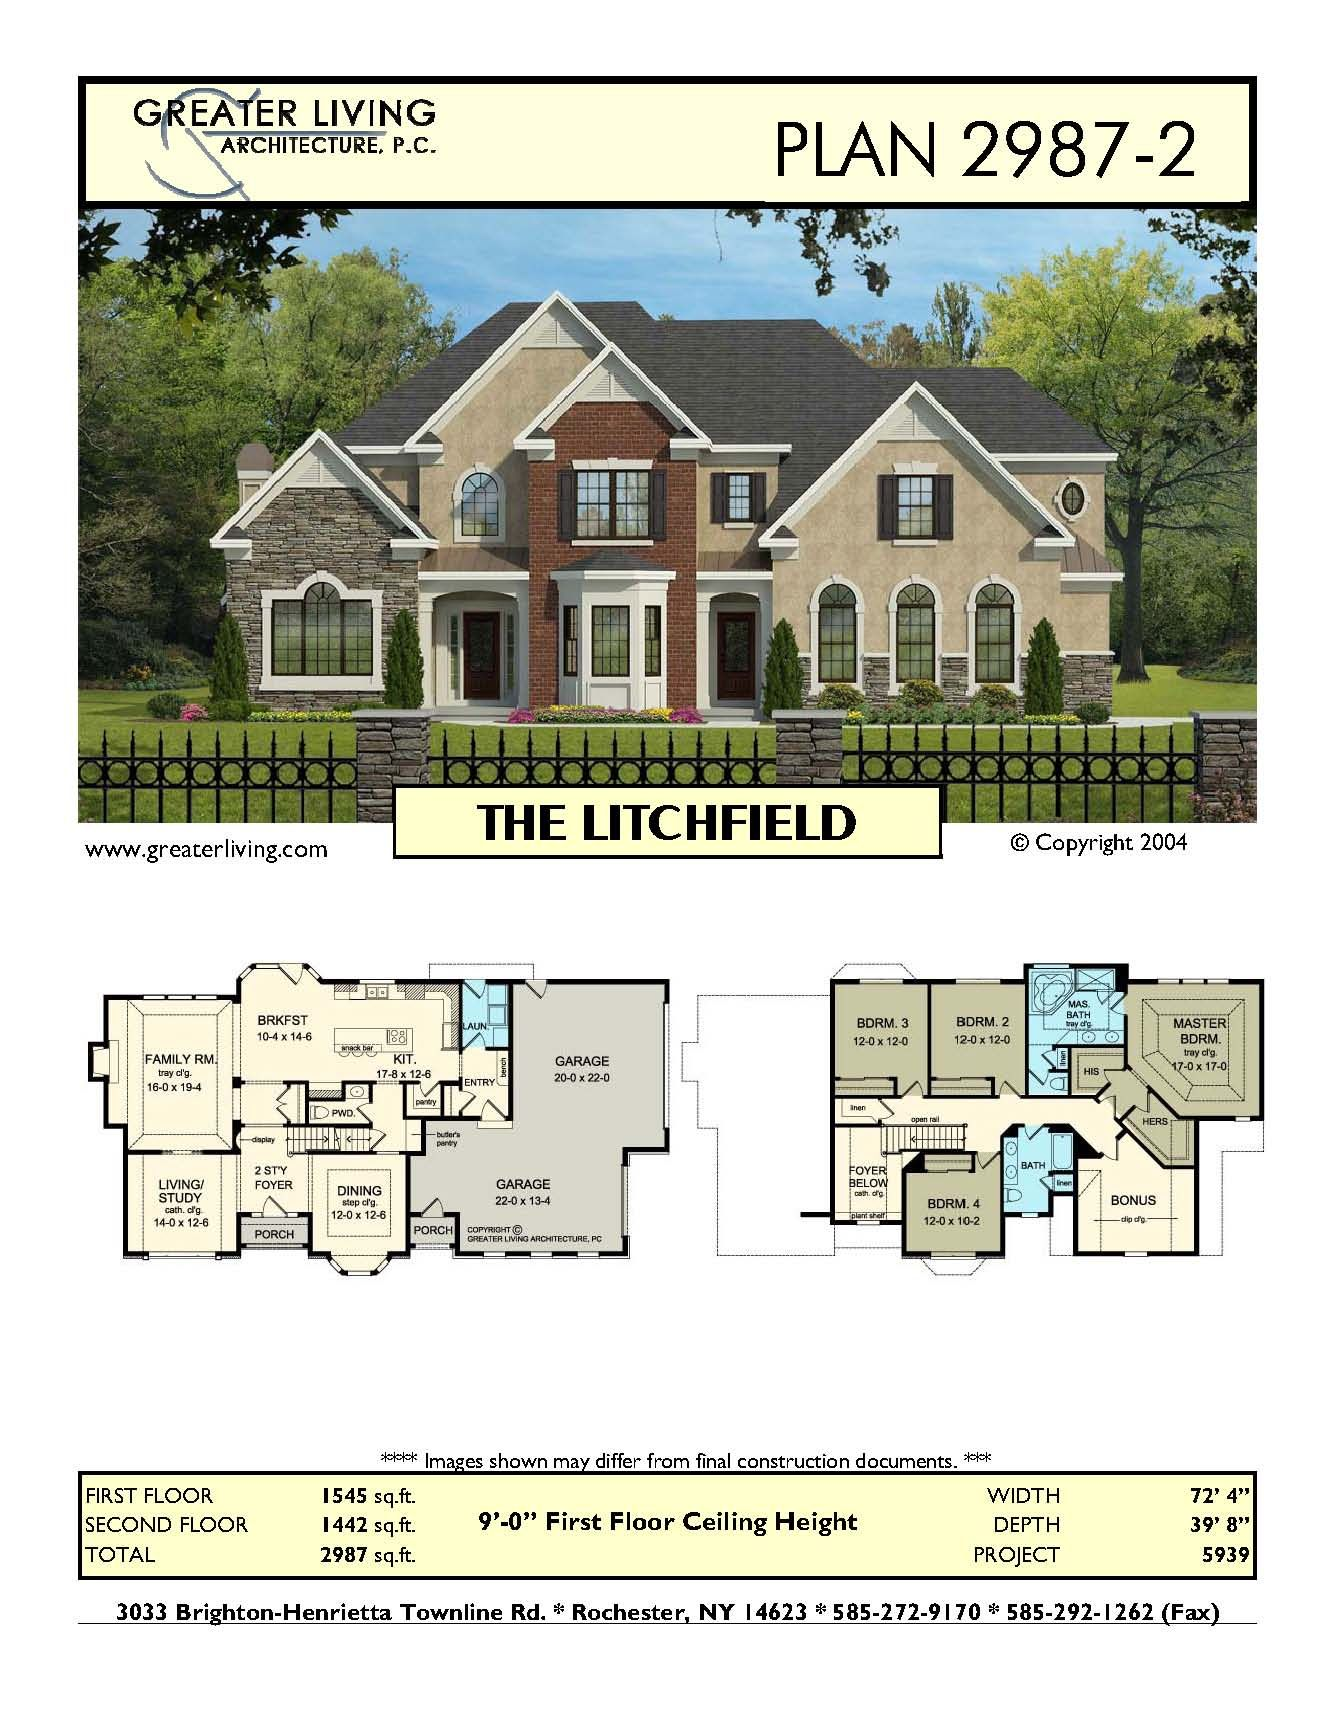 Plan 2987 2 THE LITCHFIELD